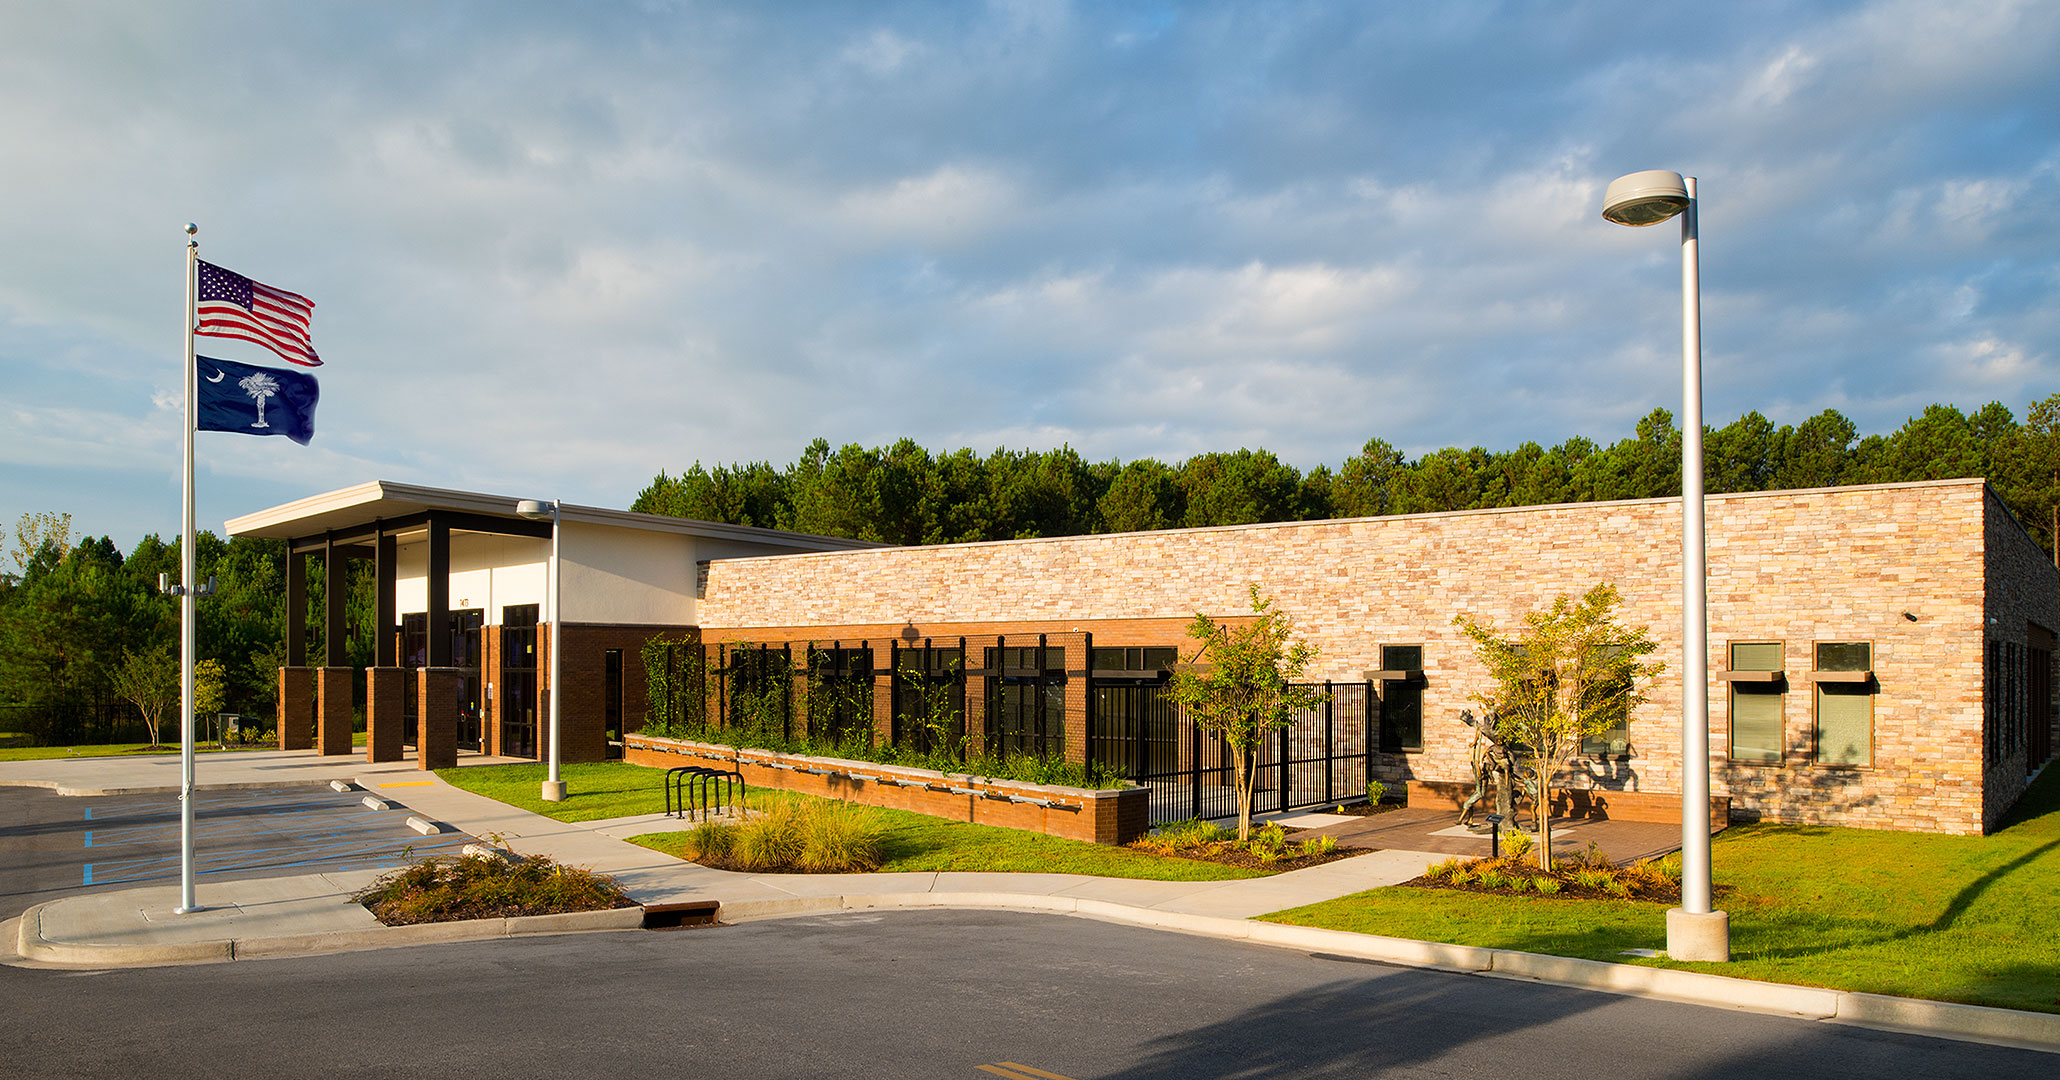 Boudreaux architects worked with the Richland County Recreation Commission to update the exterior and design the interiors at the RCRC Headquarters.